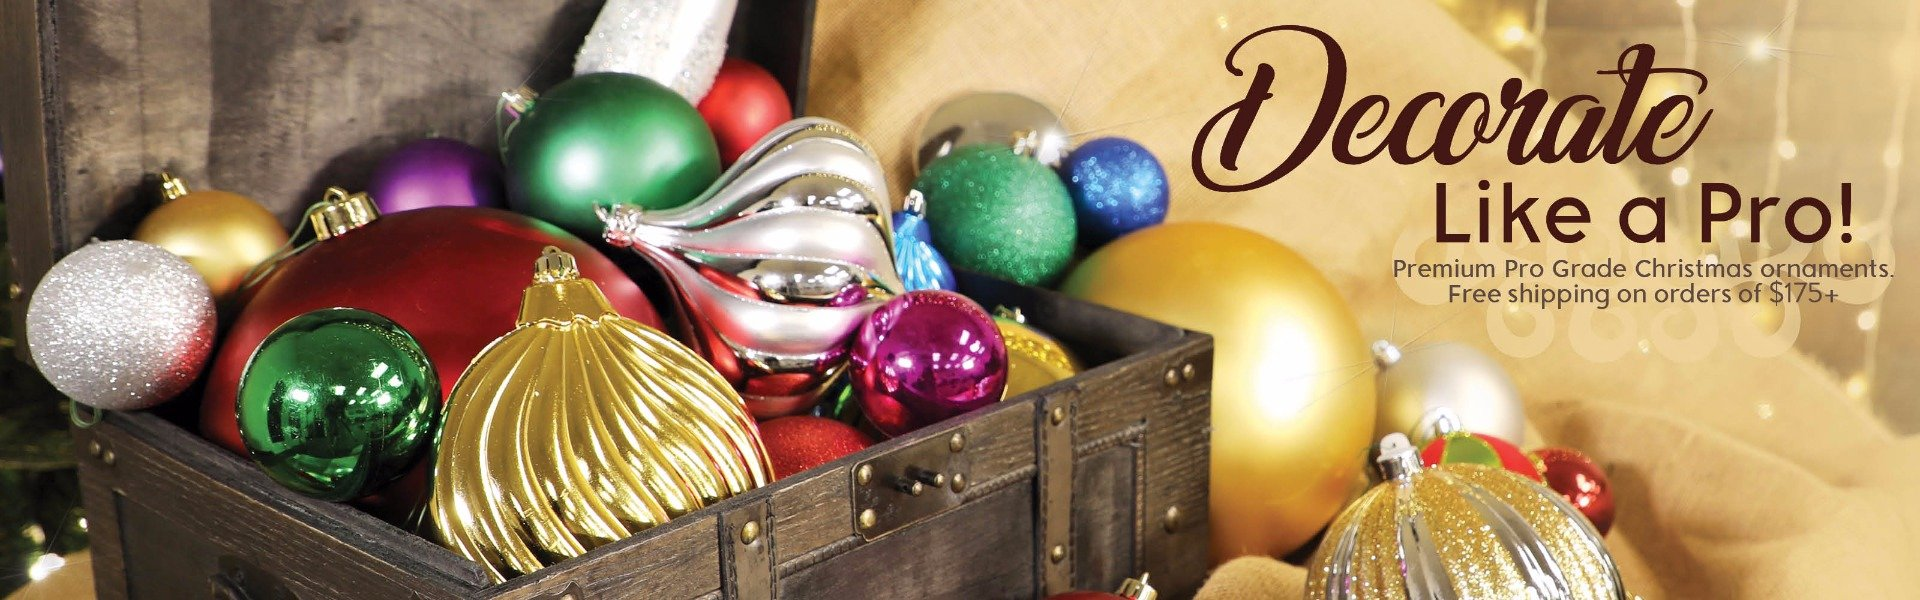 Decorate Like a Pro! Premium Pro Grade Christmas Ornaments. Free shipping over $175